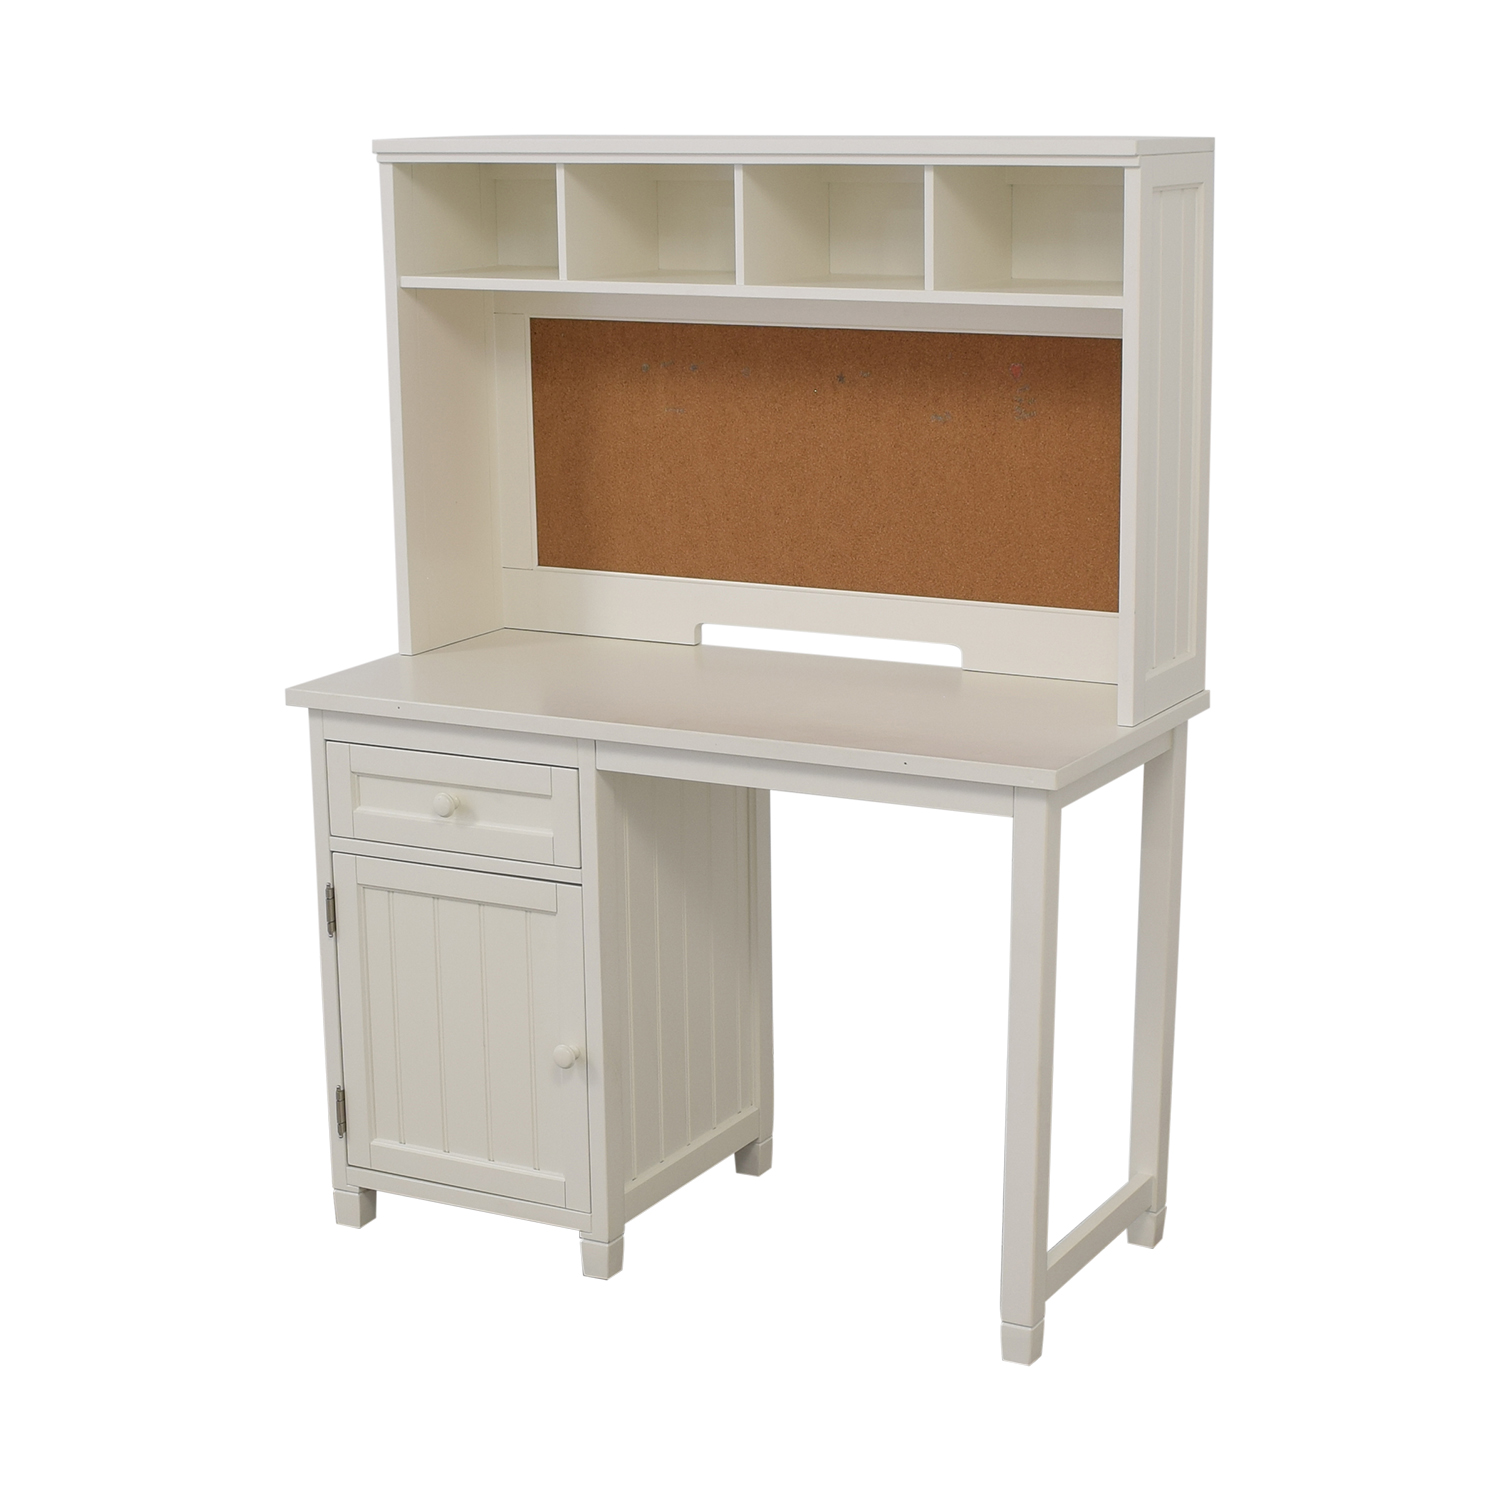 Pottery Barn Teen Pottery Barn Teen Beadboard Desk and Hutch